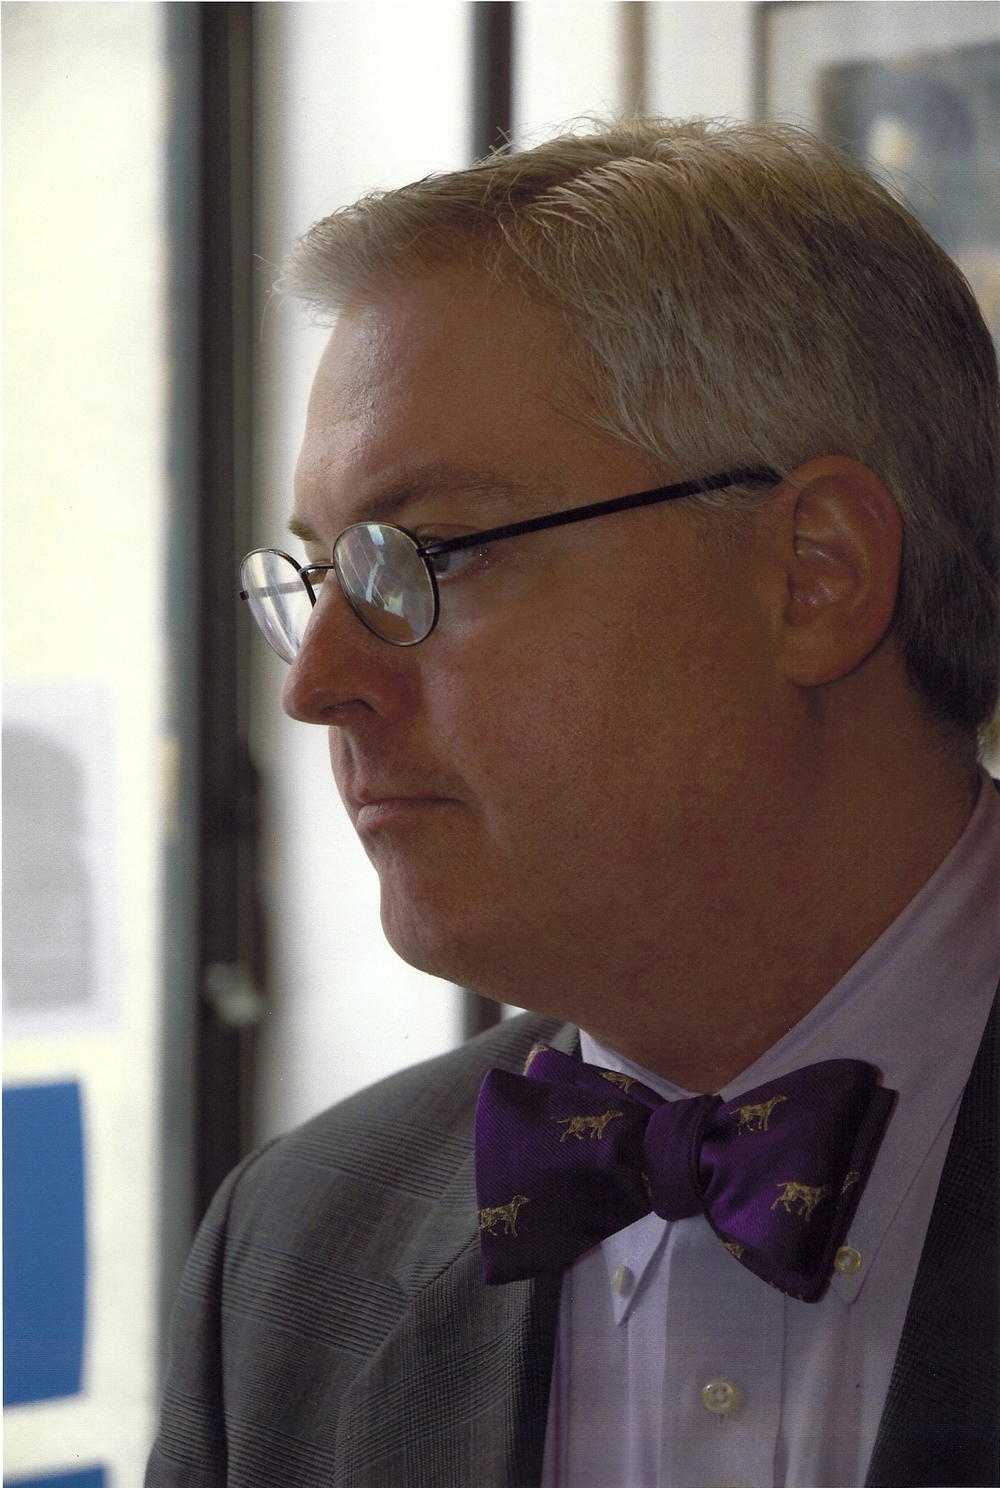 Daniel Wuenschel with Purple Tie-2.JPG